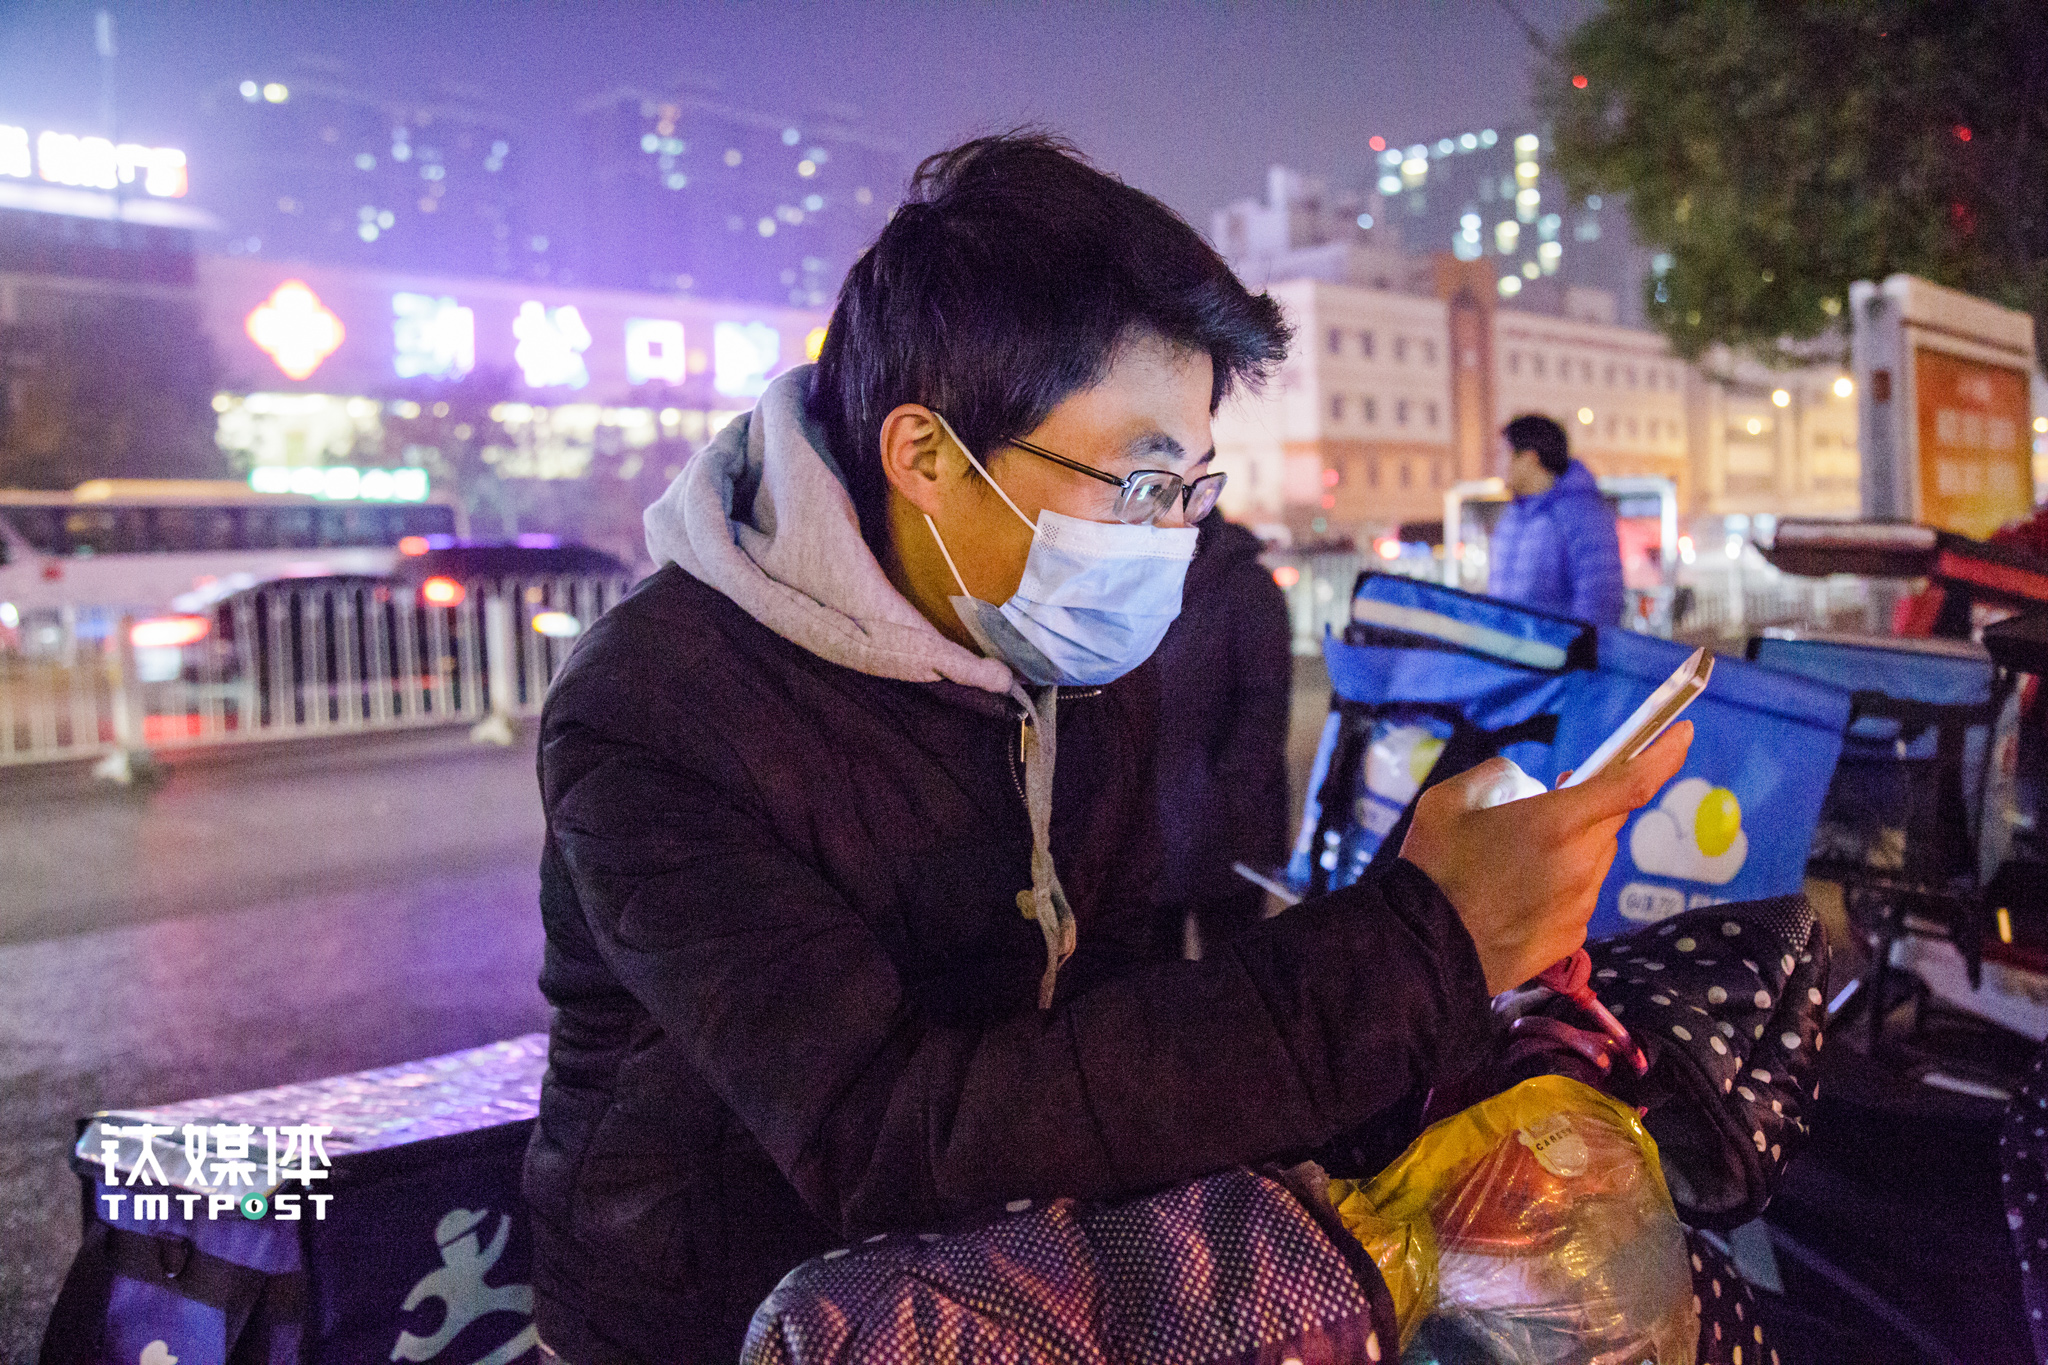 "At 6 pm, the sky was turning dark. Part-time delivery staff Xiao Feng works from 8 am to 5 pm at a restaurant and comes out work as delivery guy after work. The restaurant gives Xiao Feng four days off every month, during which he works full-time as a delivery guy. He has been in Beijing for three years, originally from Lanzhou. ""Beijing is an expensive city to live in, I have to earn more,"" he said. Every month he can earn over ¥1000 from the part-time job. The platform rewards him ¥12 if he could achieve an average of 15 orders everyday."